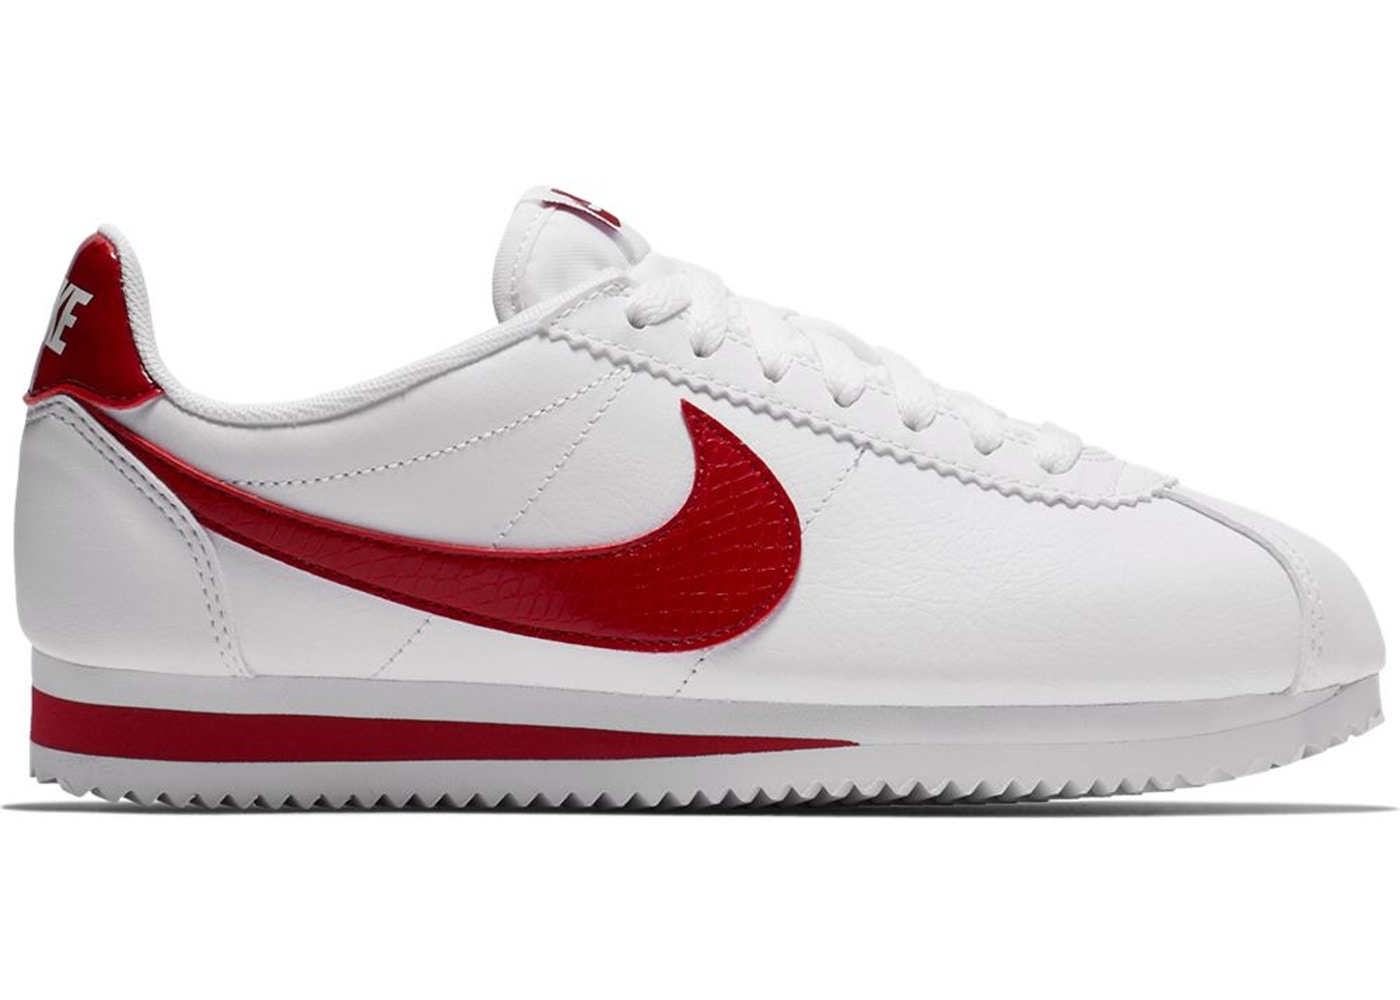 new style 2725b ddf80 Nike Classic Cortez White Red Crush (W) - 807471-108